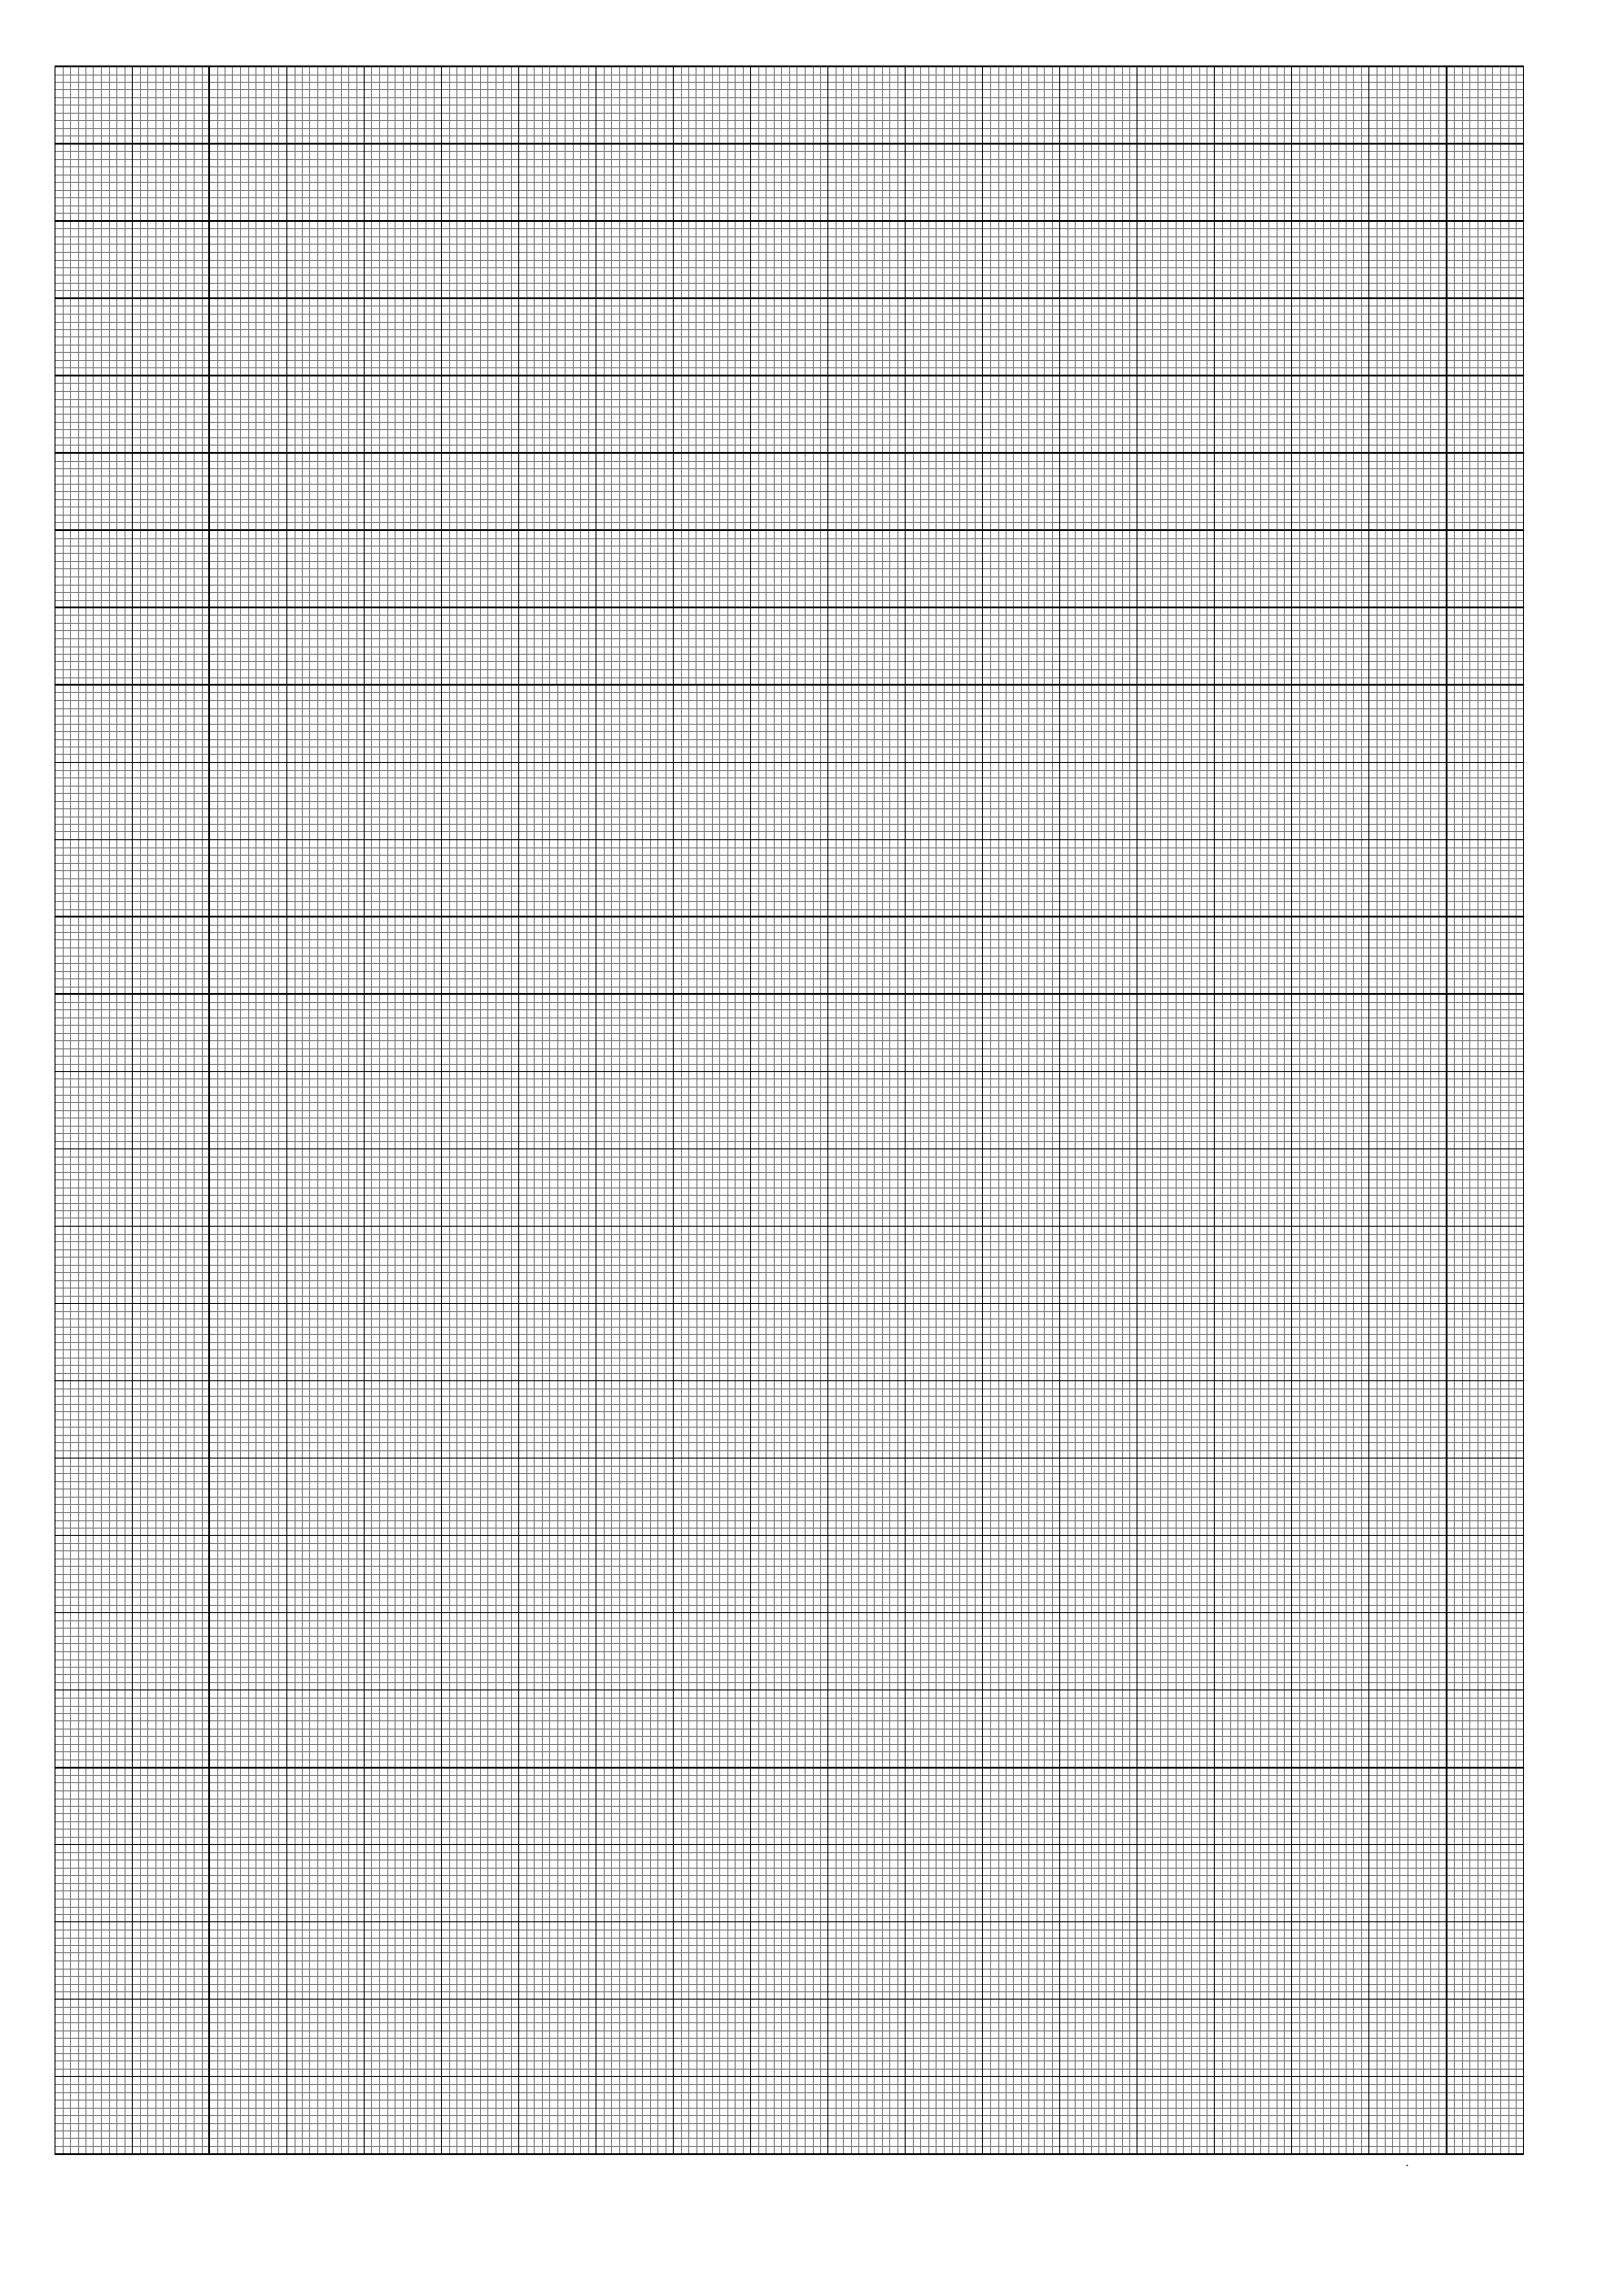 1 mm a4 square graph paper free download